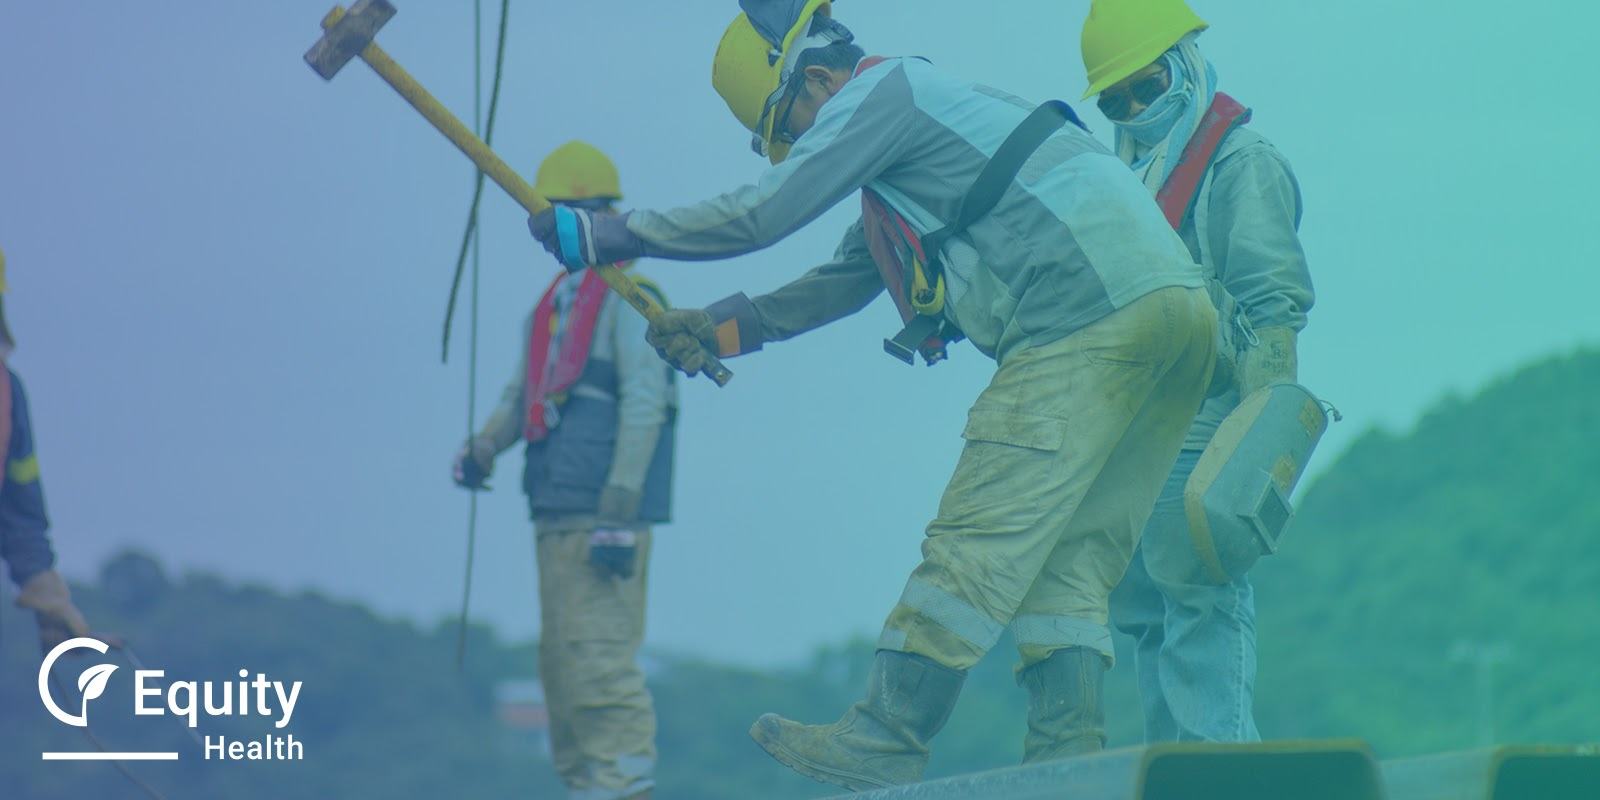 Building Industry Workers In Protective Gear